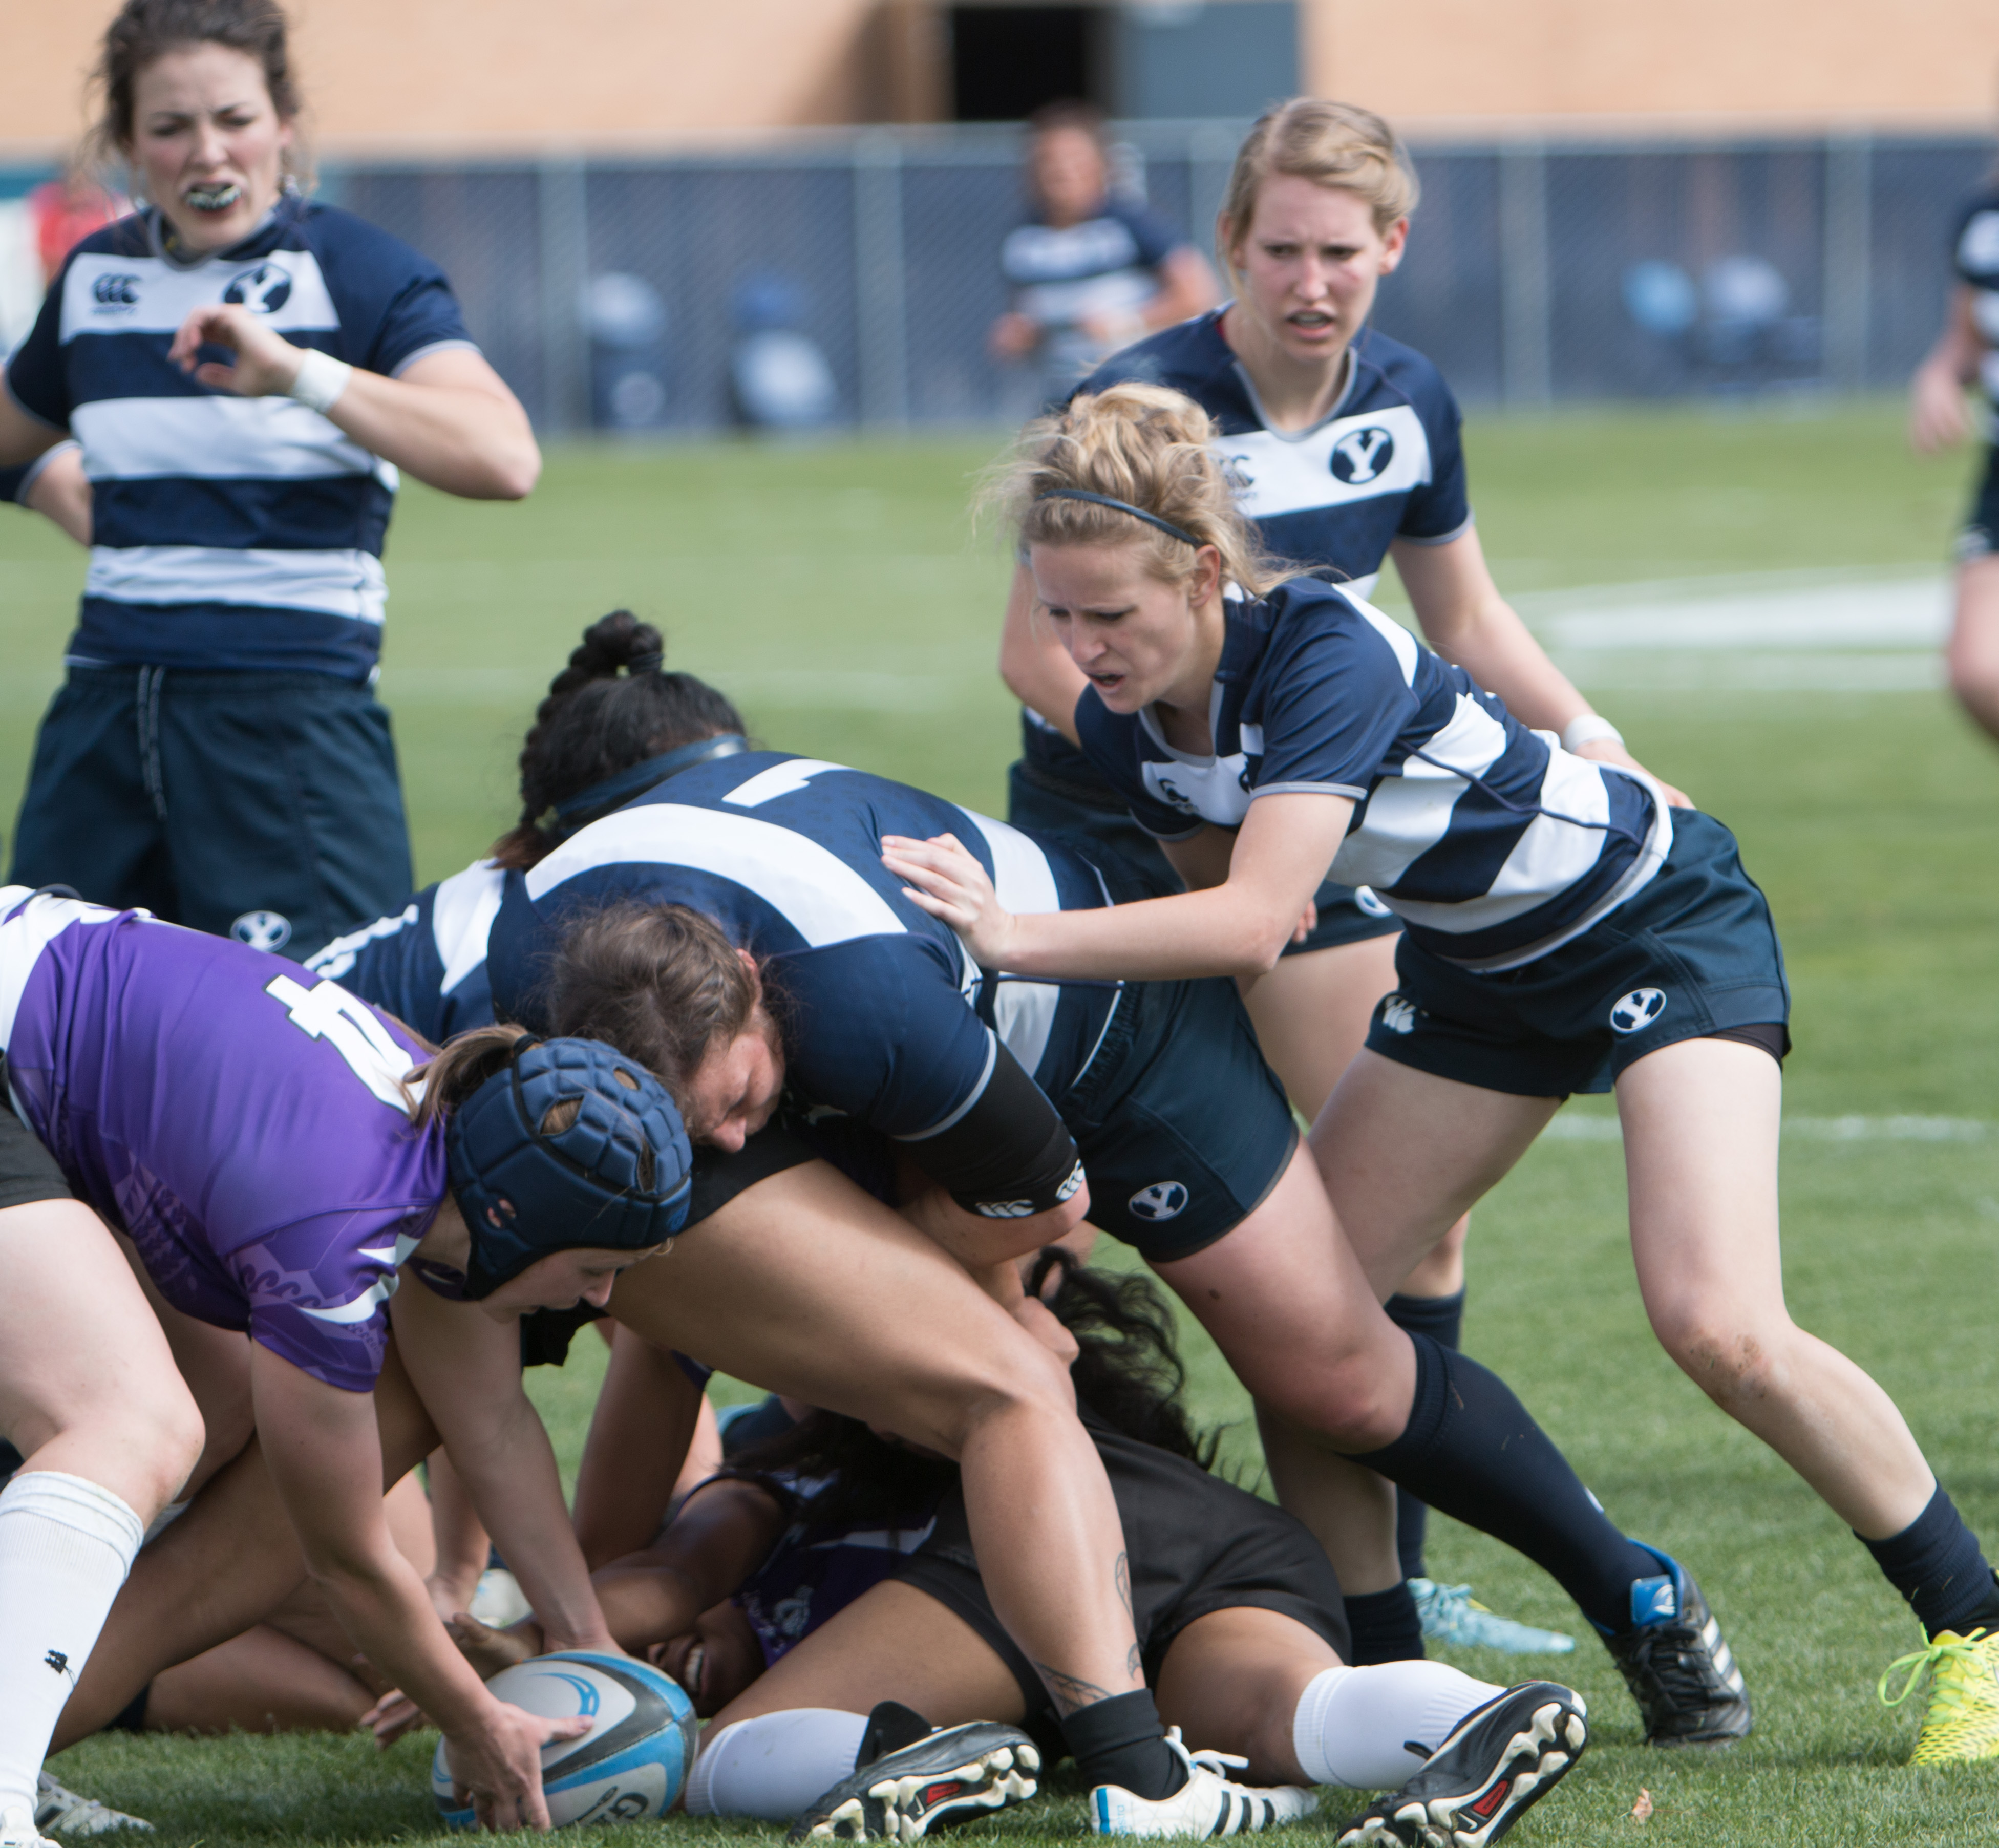 Basketball Clubs In Rugby: BYU Women's Rugby Prevails Over Lethbridge